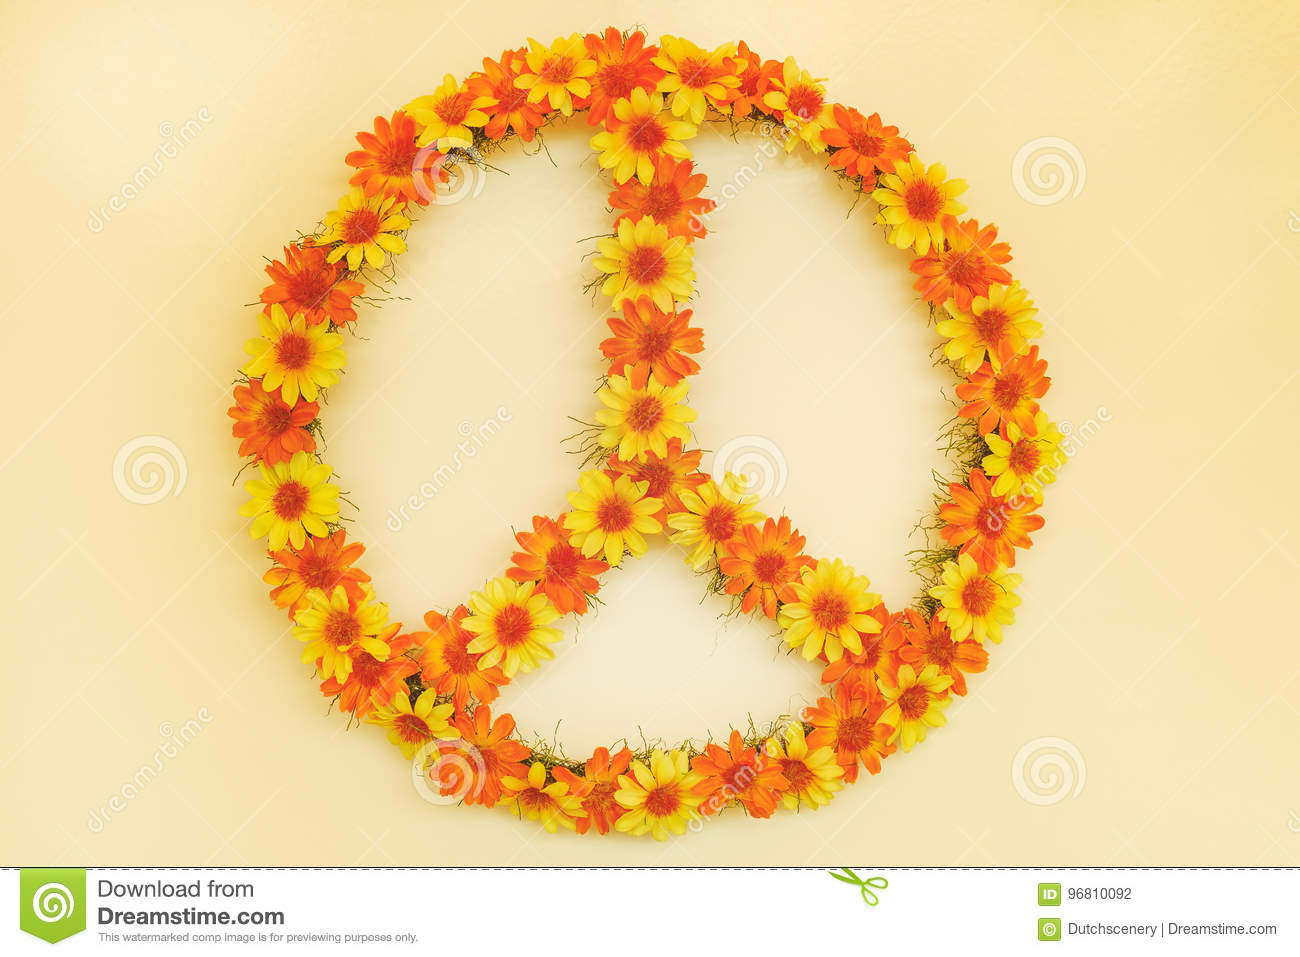 Retro Styled Image Of A Seventies Flower Power Peace Sign Stock